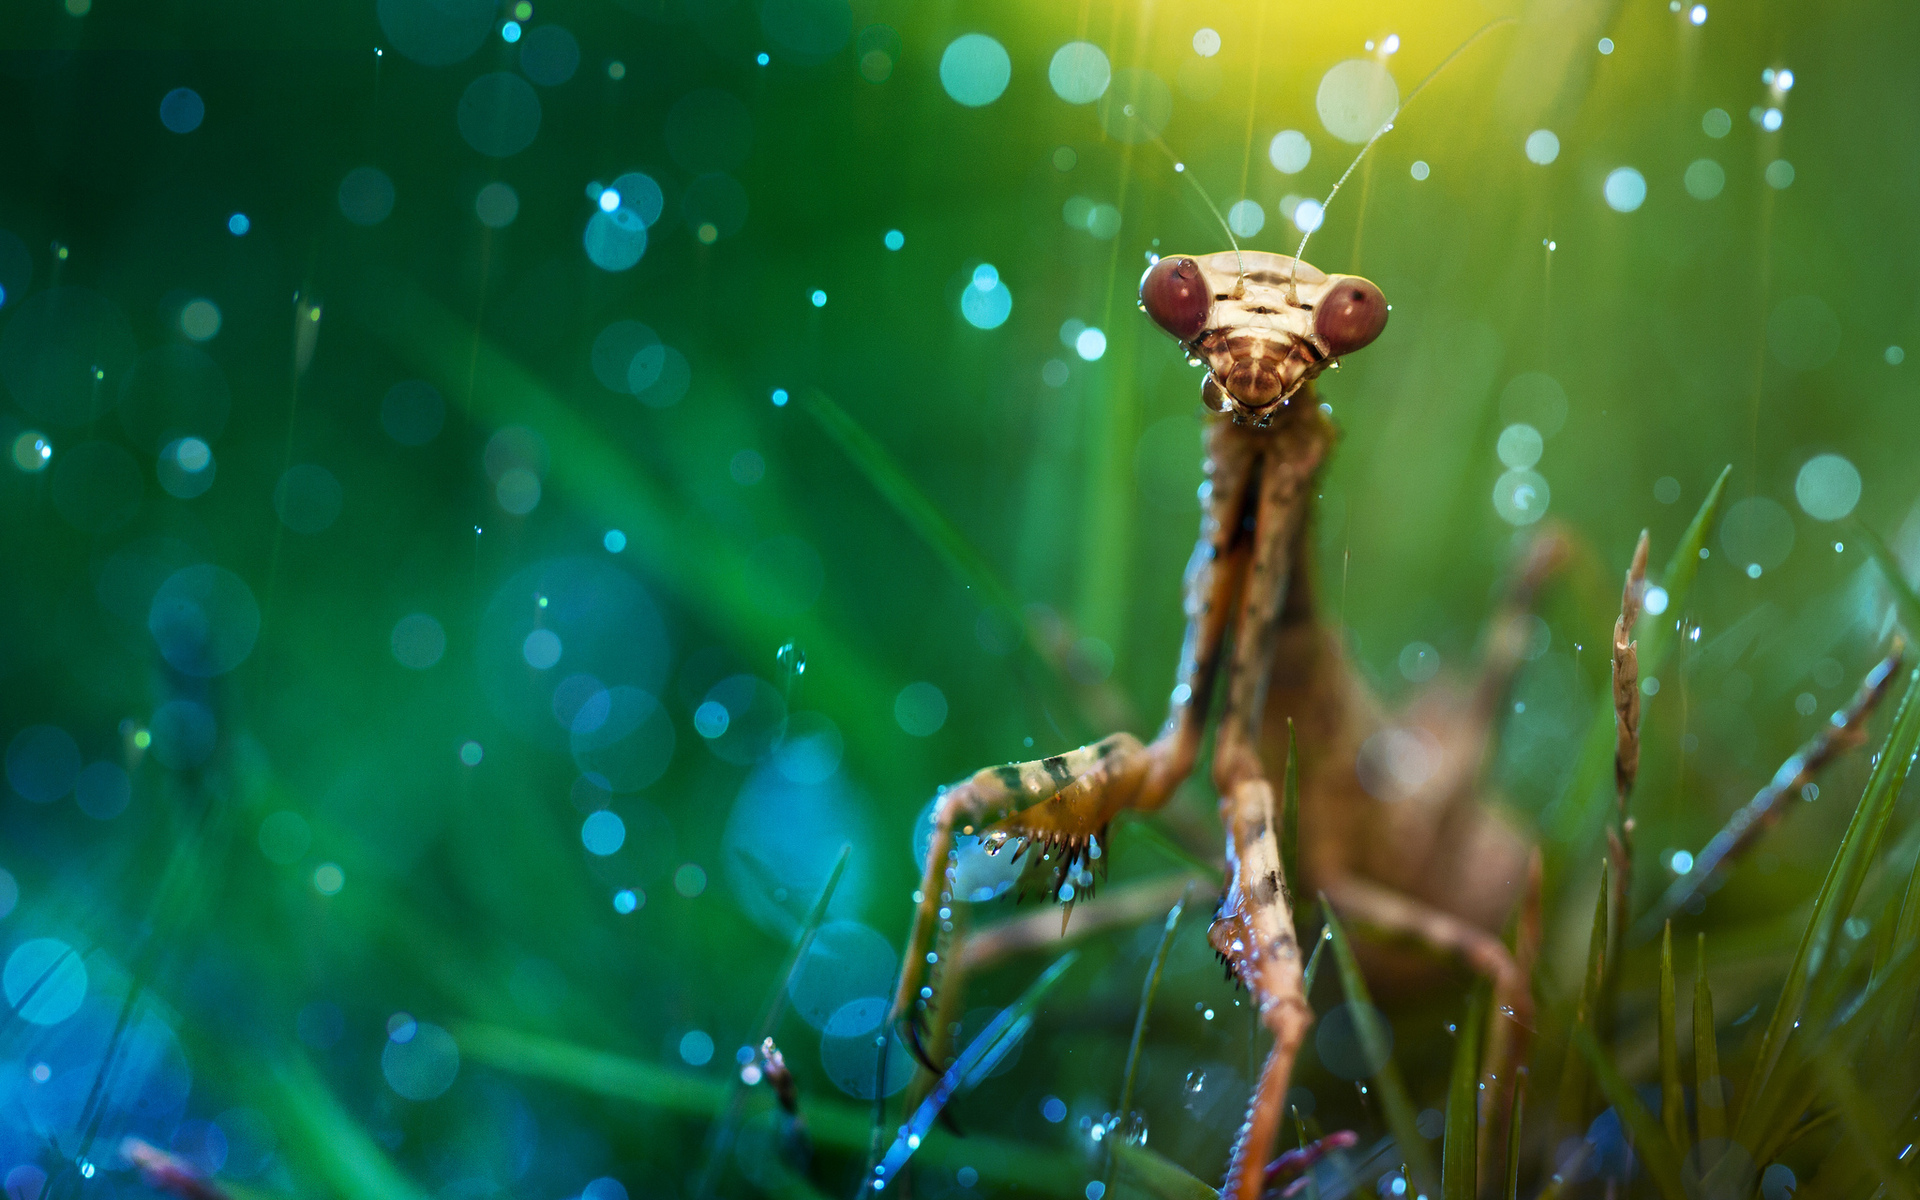 Awesome Animal Wallpaper: Awesome Praying Mantis Animal Macro Photography Hd Wallpaper 1920x1200px